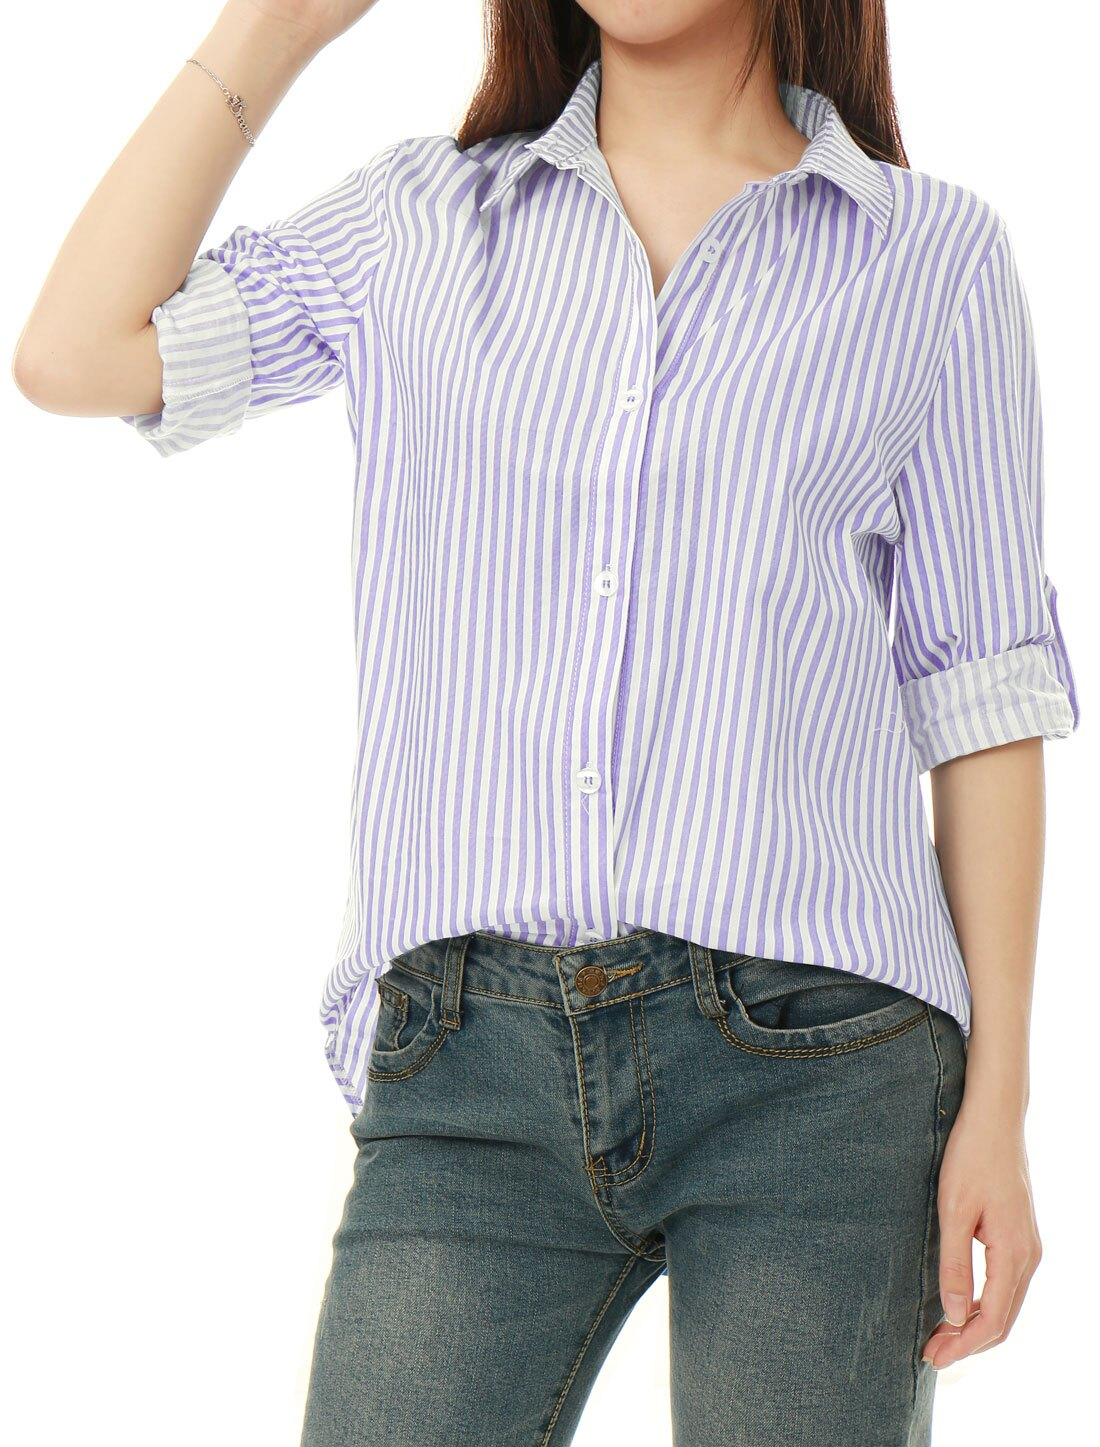 Unique Bargains Women Striped High Low Hem Roll Up Sleeves Shirt